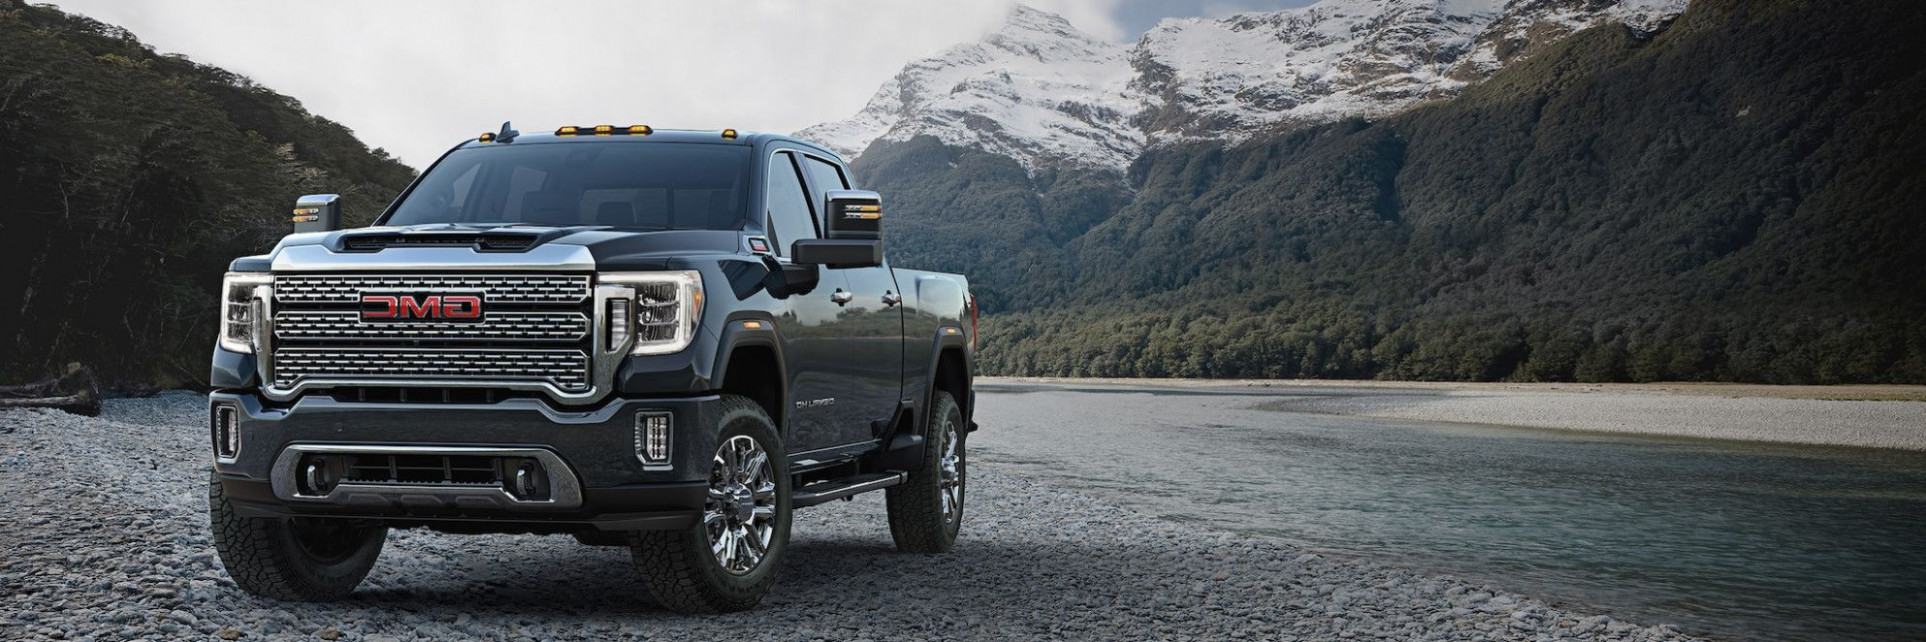 You Should Experience 7 Gmc 7 Denali Price At Least Once In ..